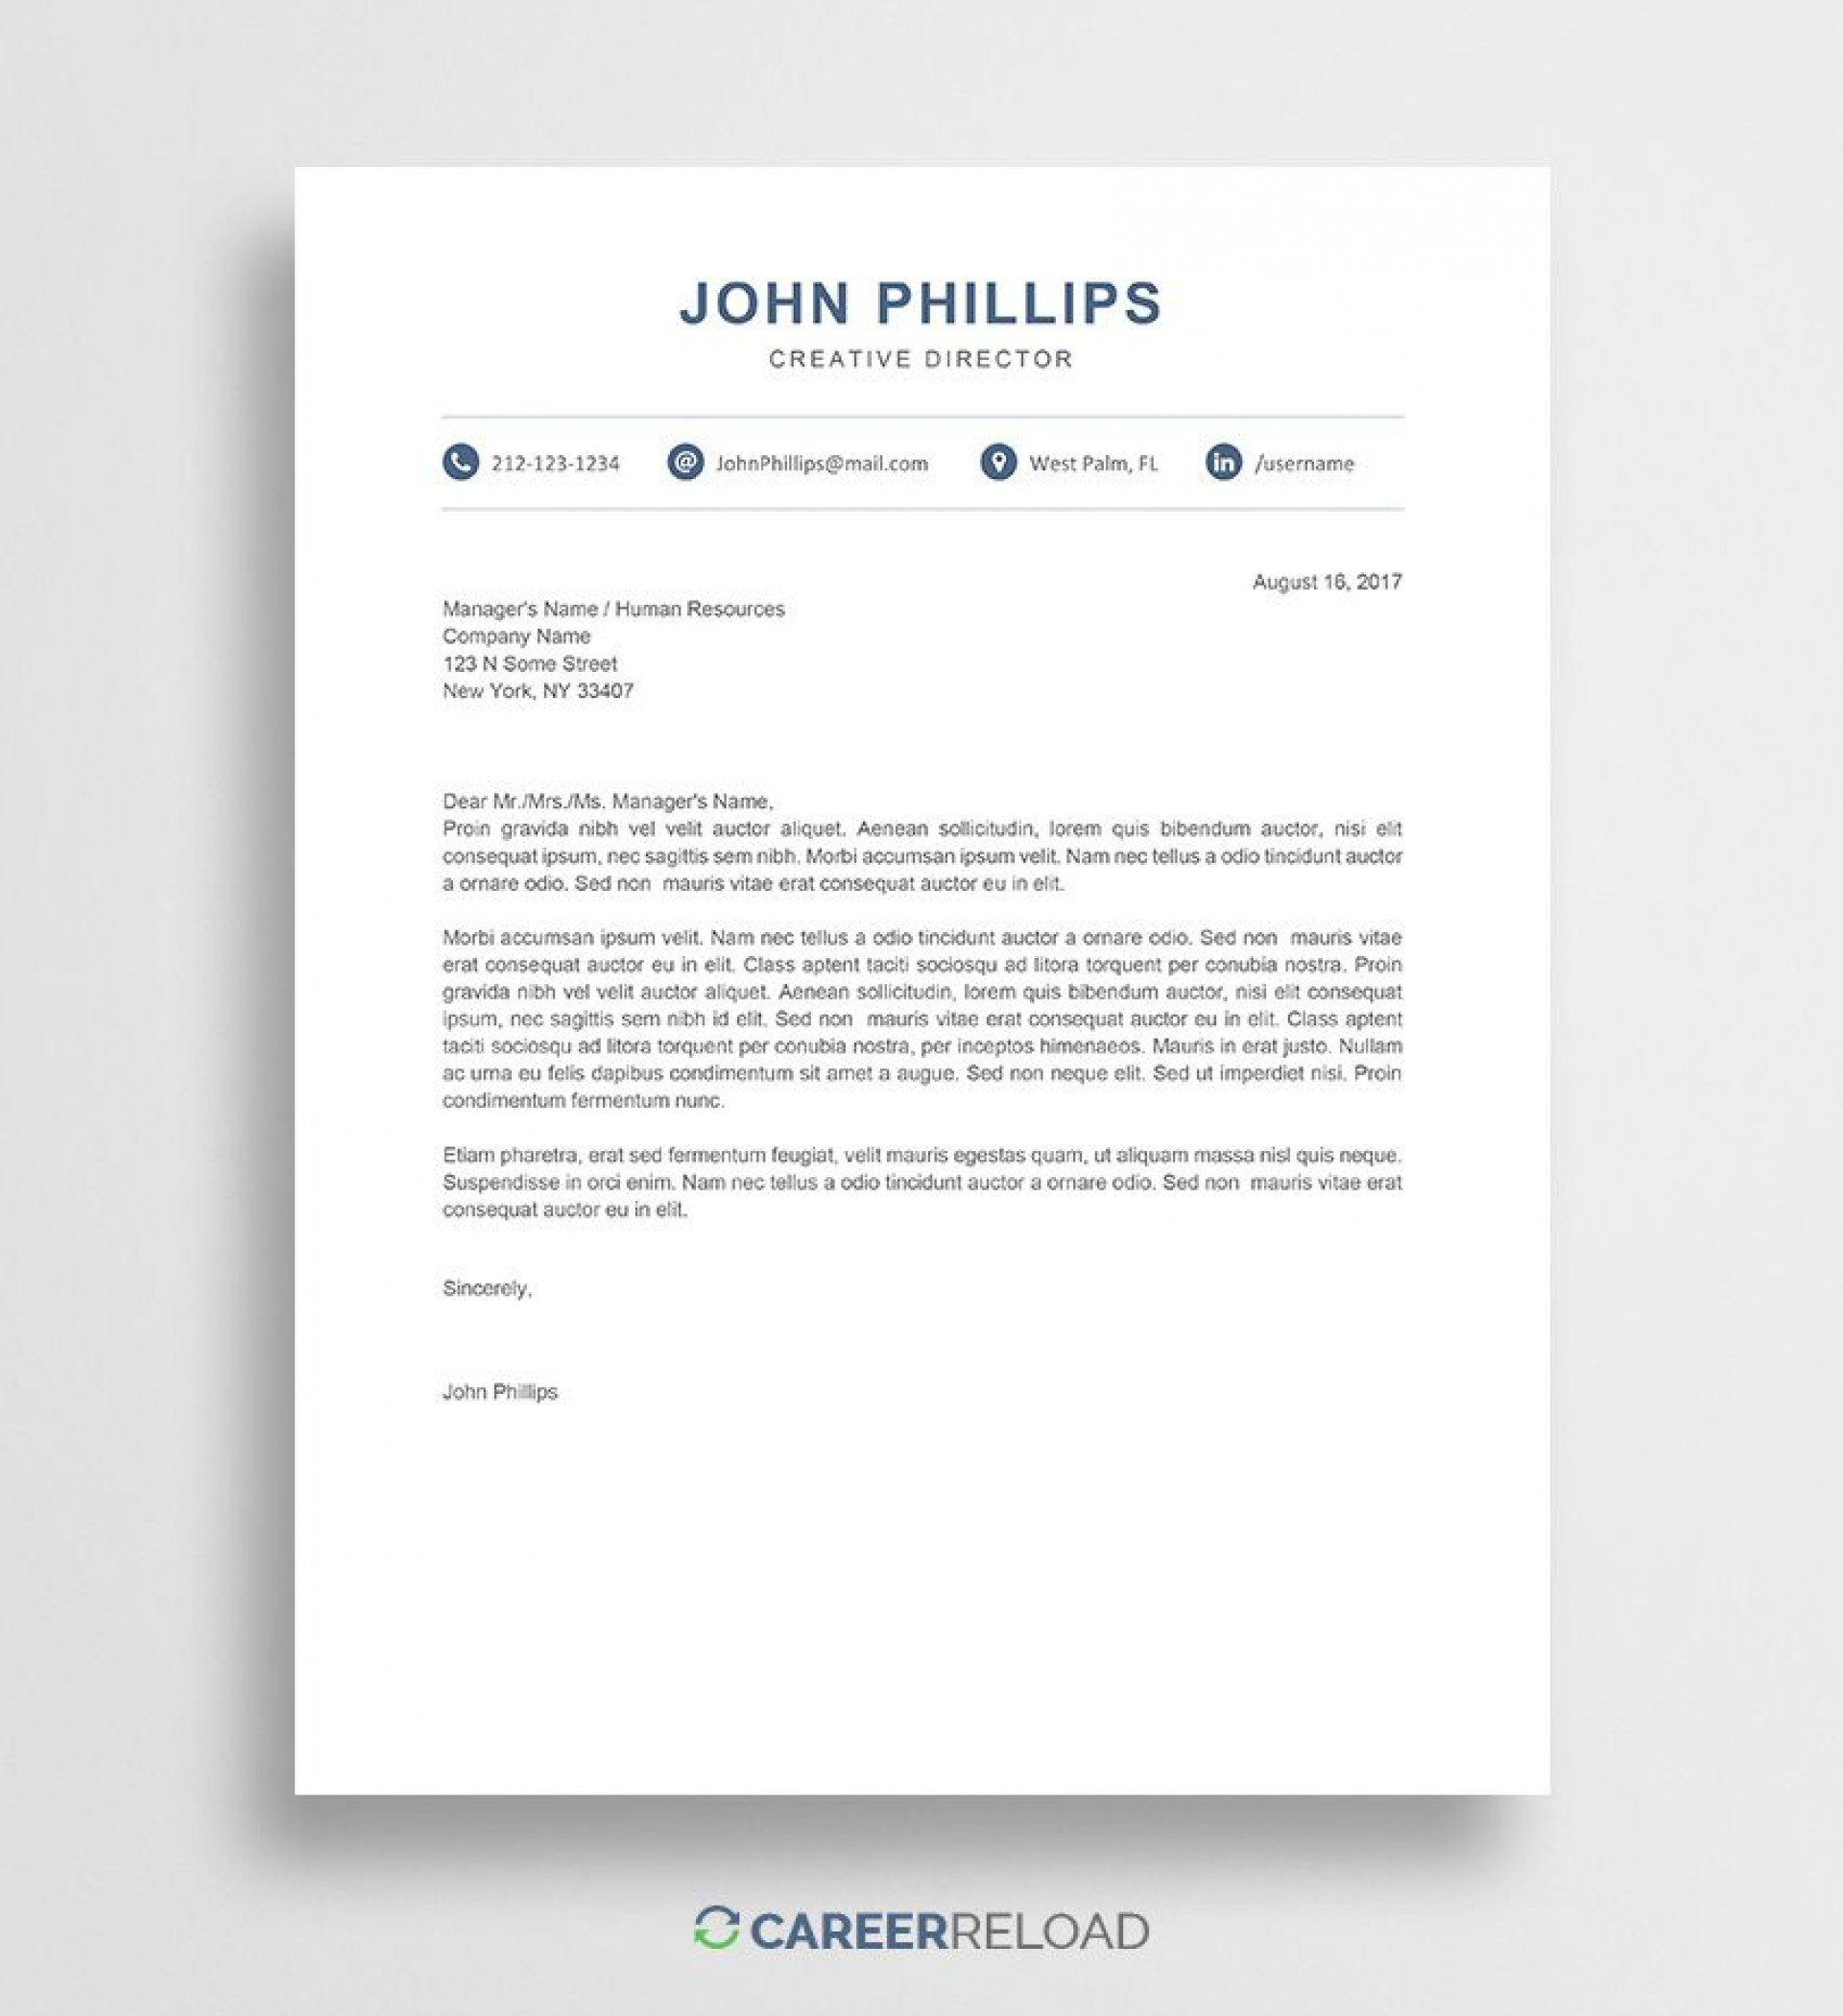 009 Unique Resume Cover Letter Template Word Free Inspiration 1920